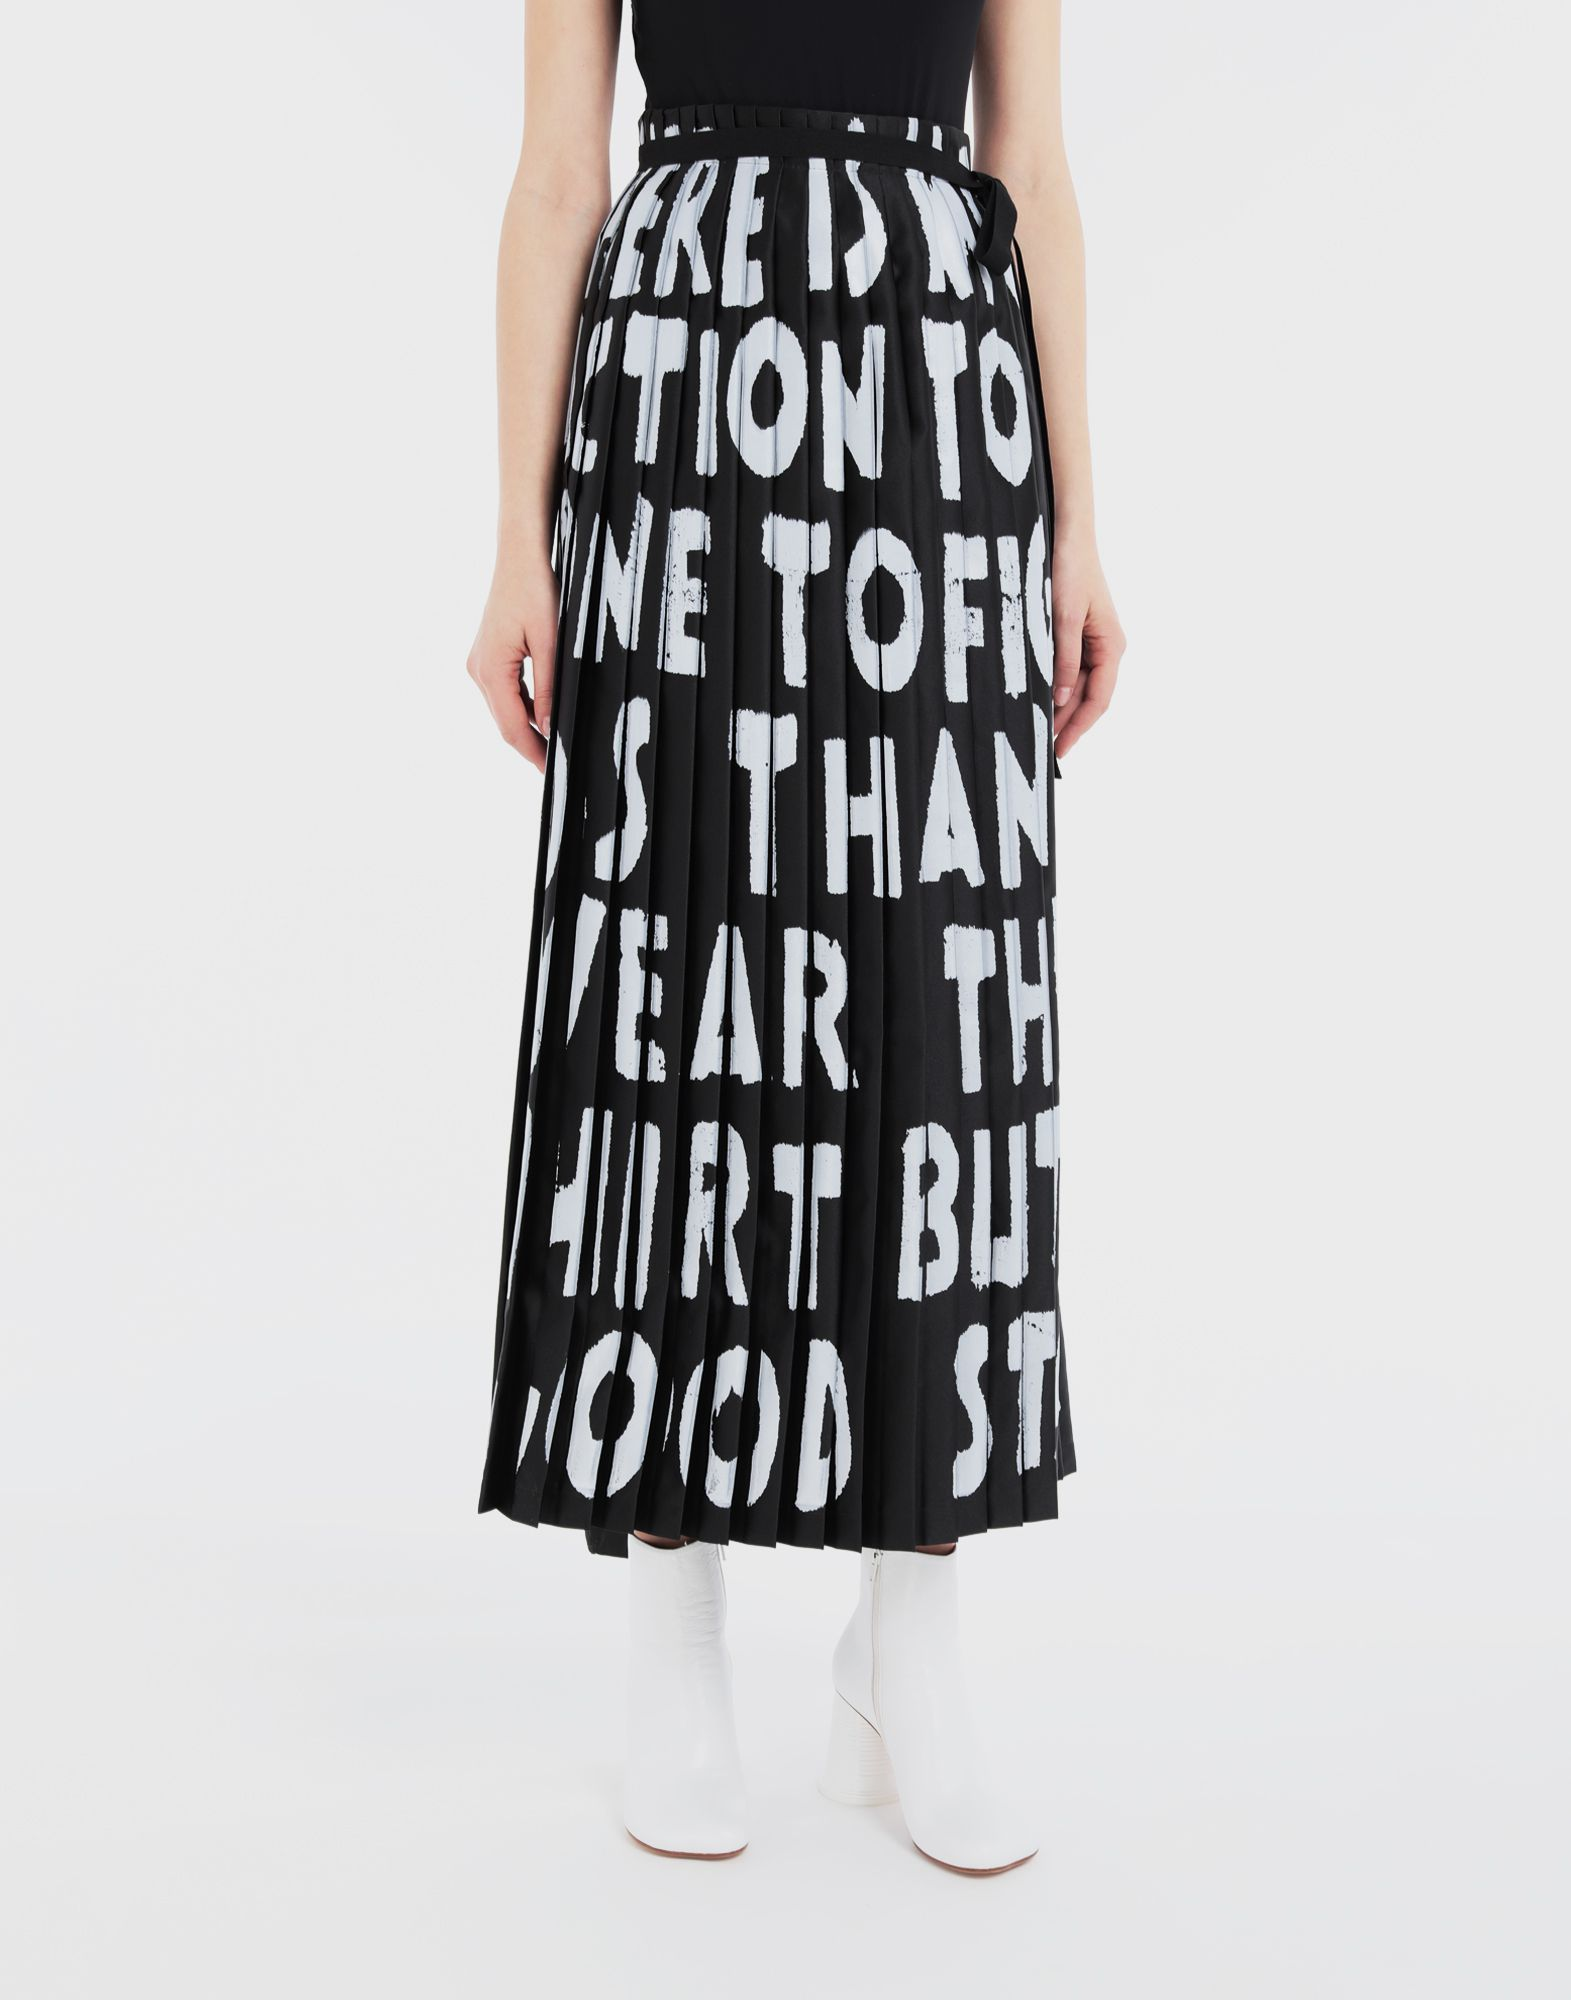 MM6 MAISON MARGIELA Charity AIDS-print pleated skirt  Long skirt Woman r